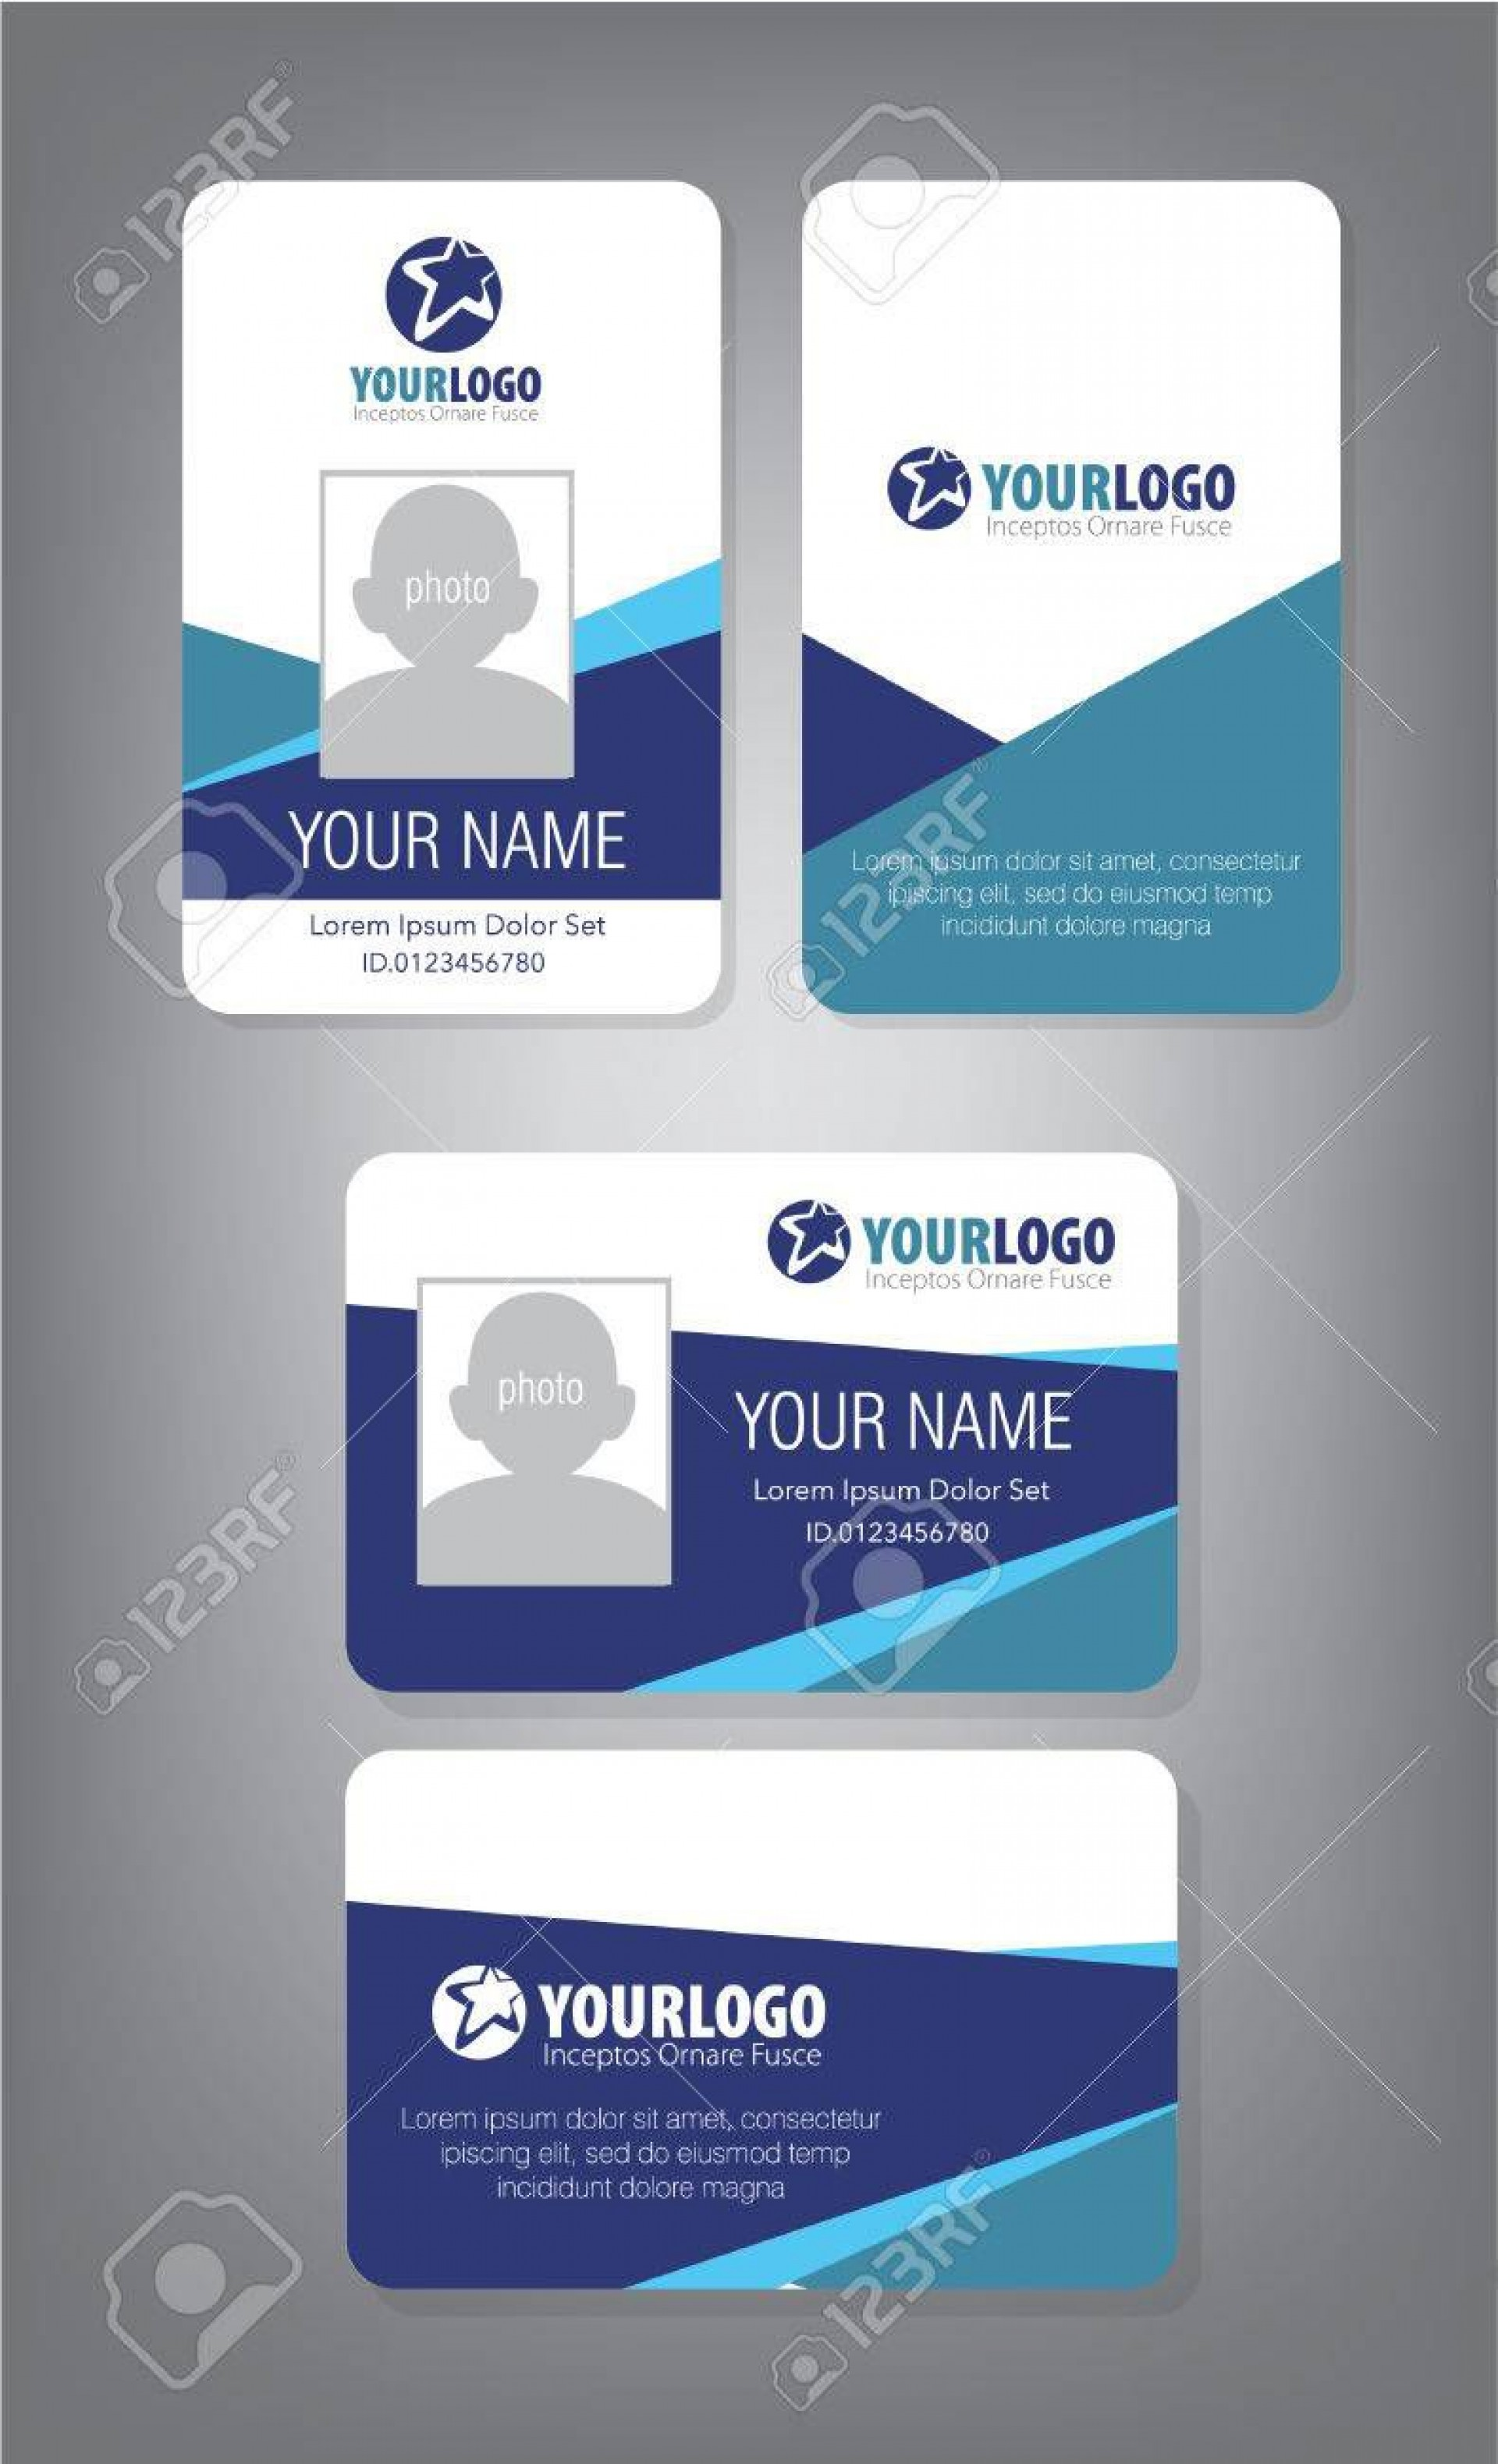 002 Impressive Employee Id Card Template Inspiration  Free Download Psd Word1920